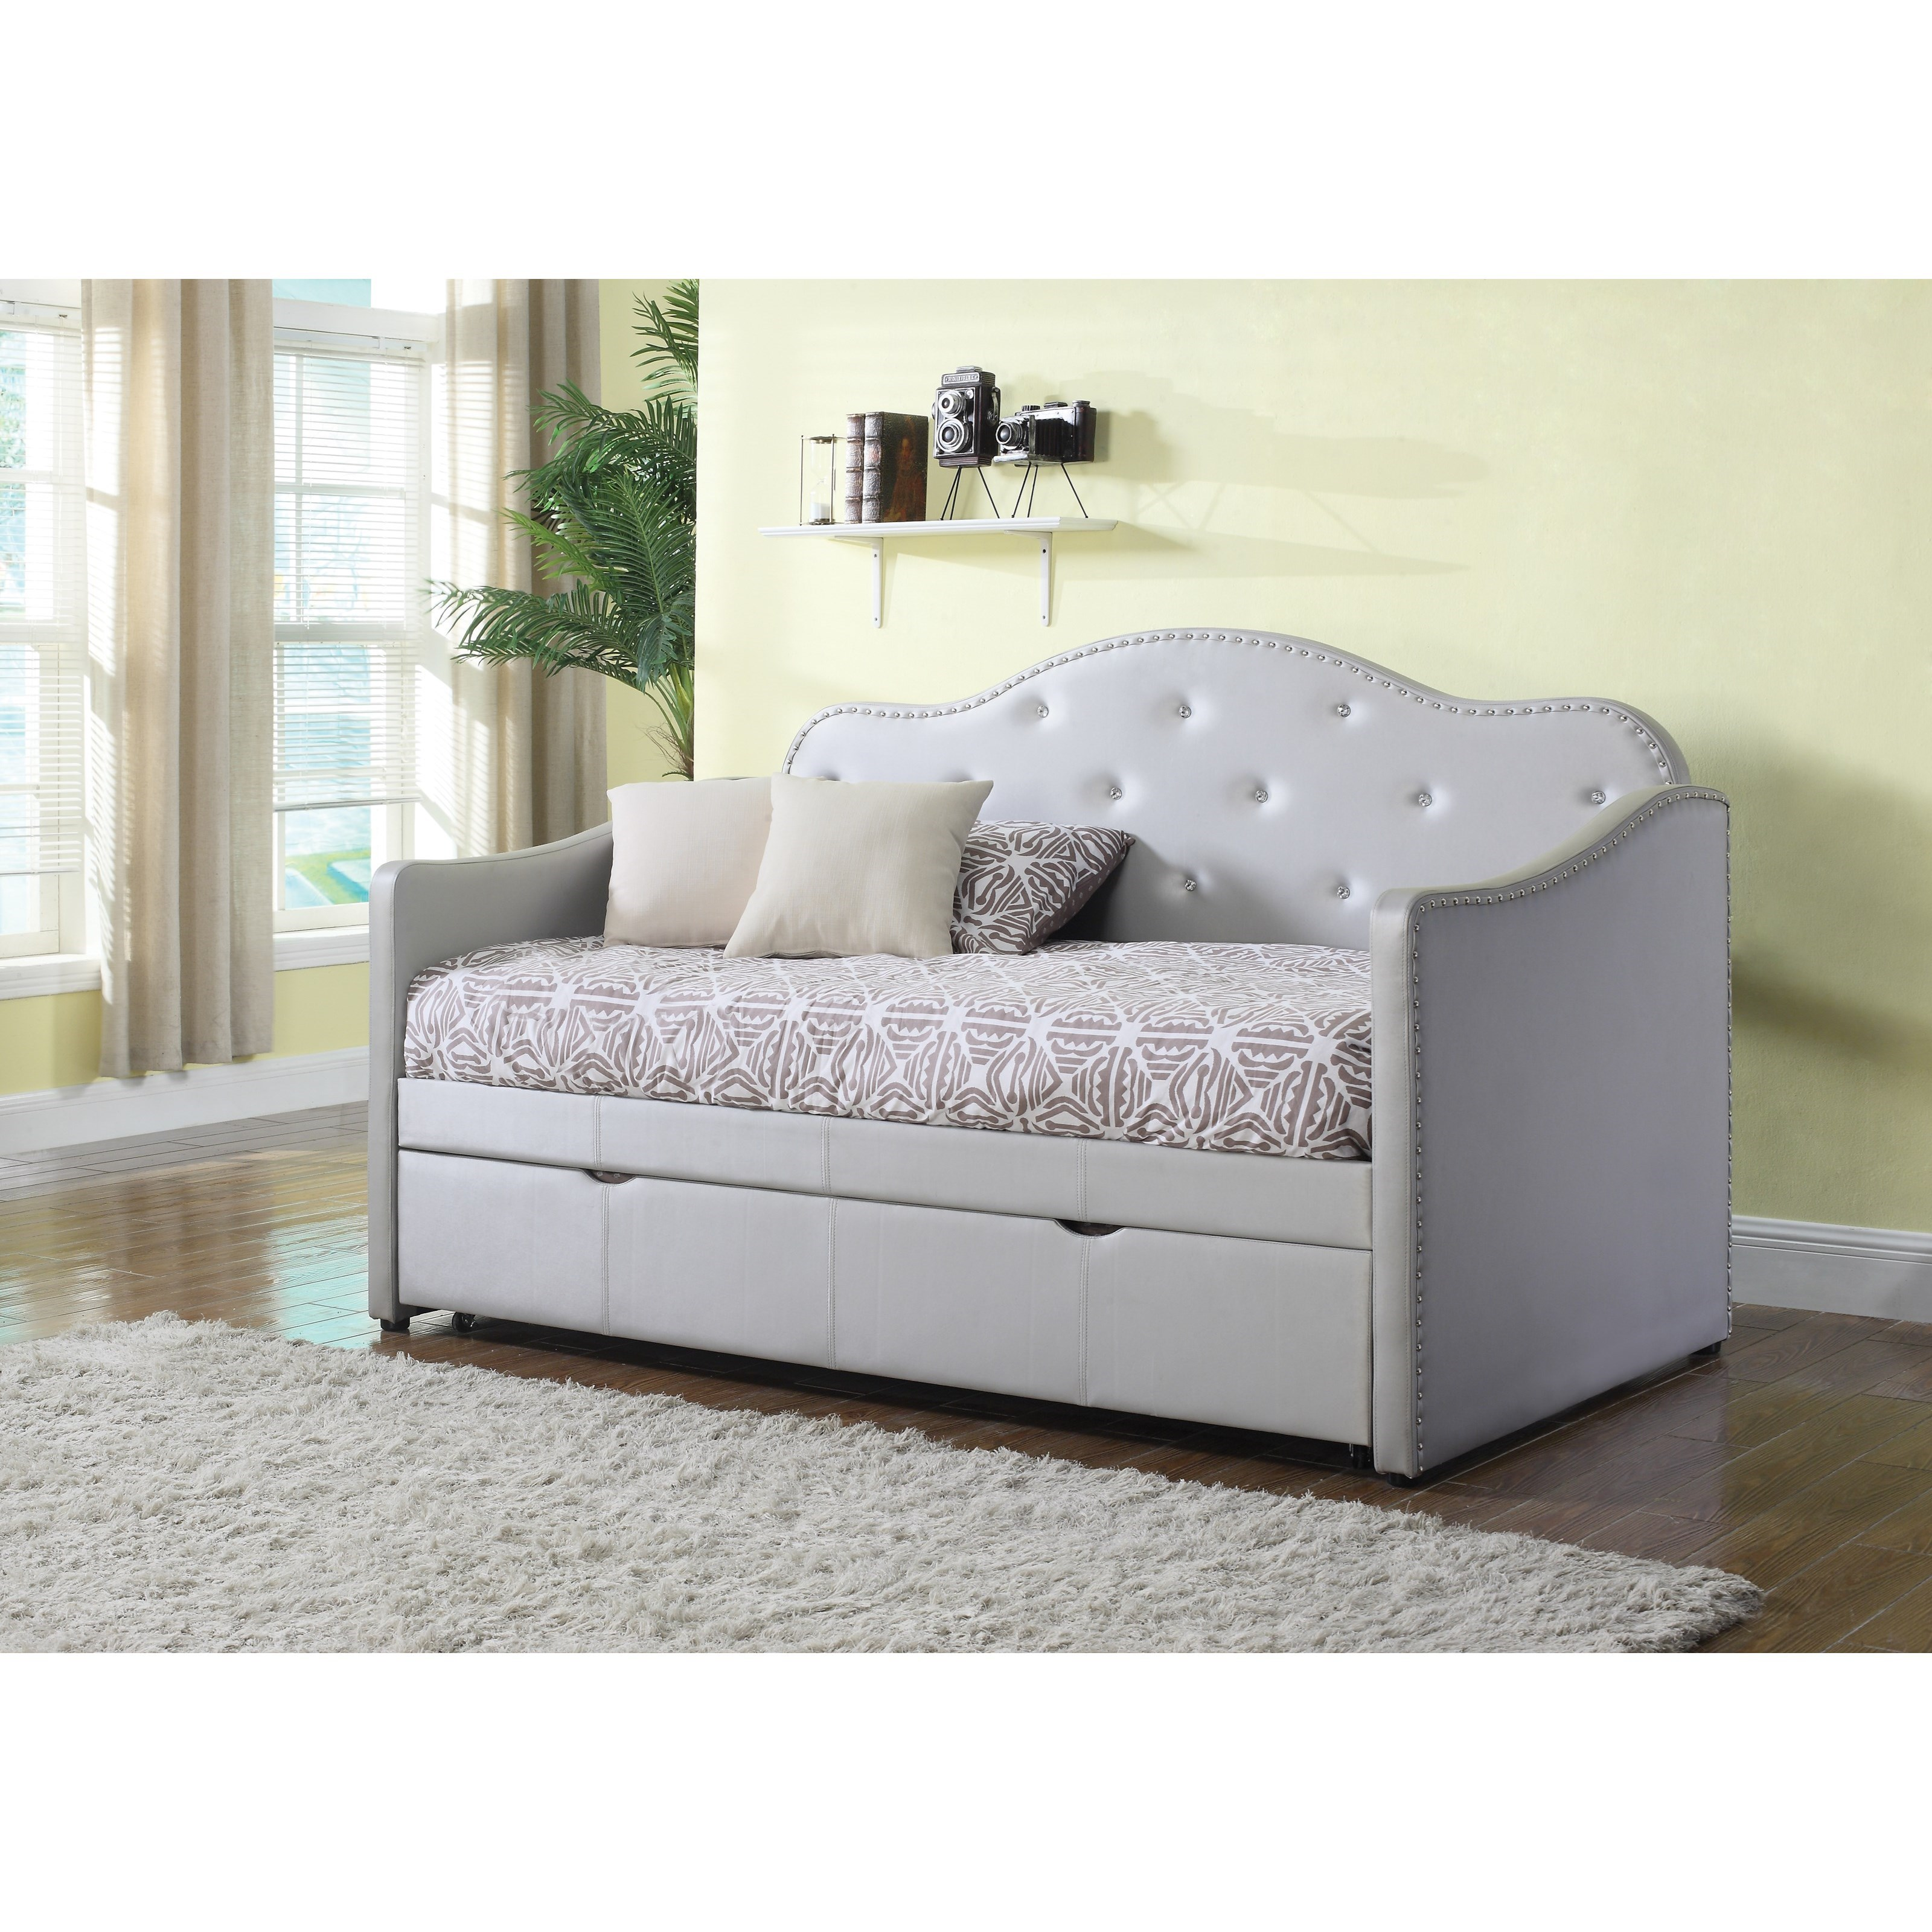 Coaster Daybeds By Coaster 300629 Upholstered Daybed With